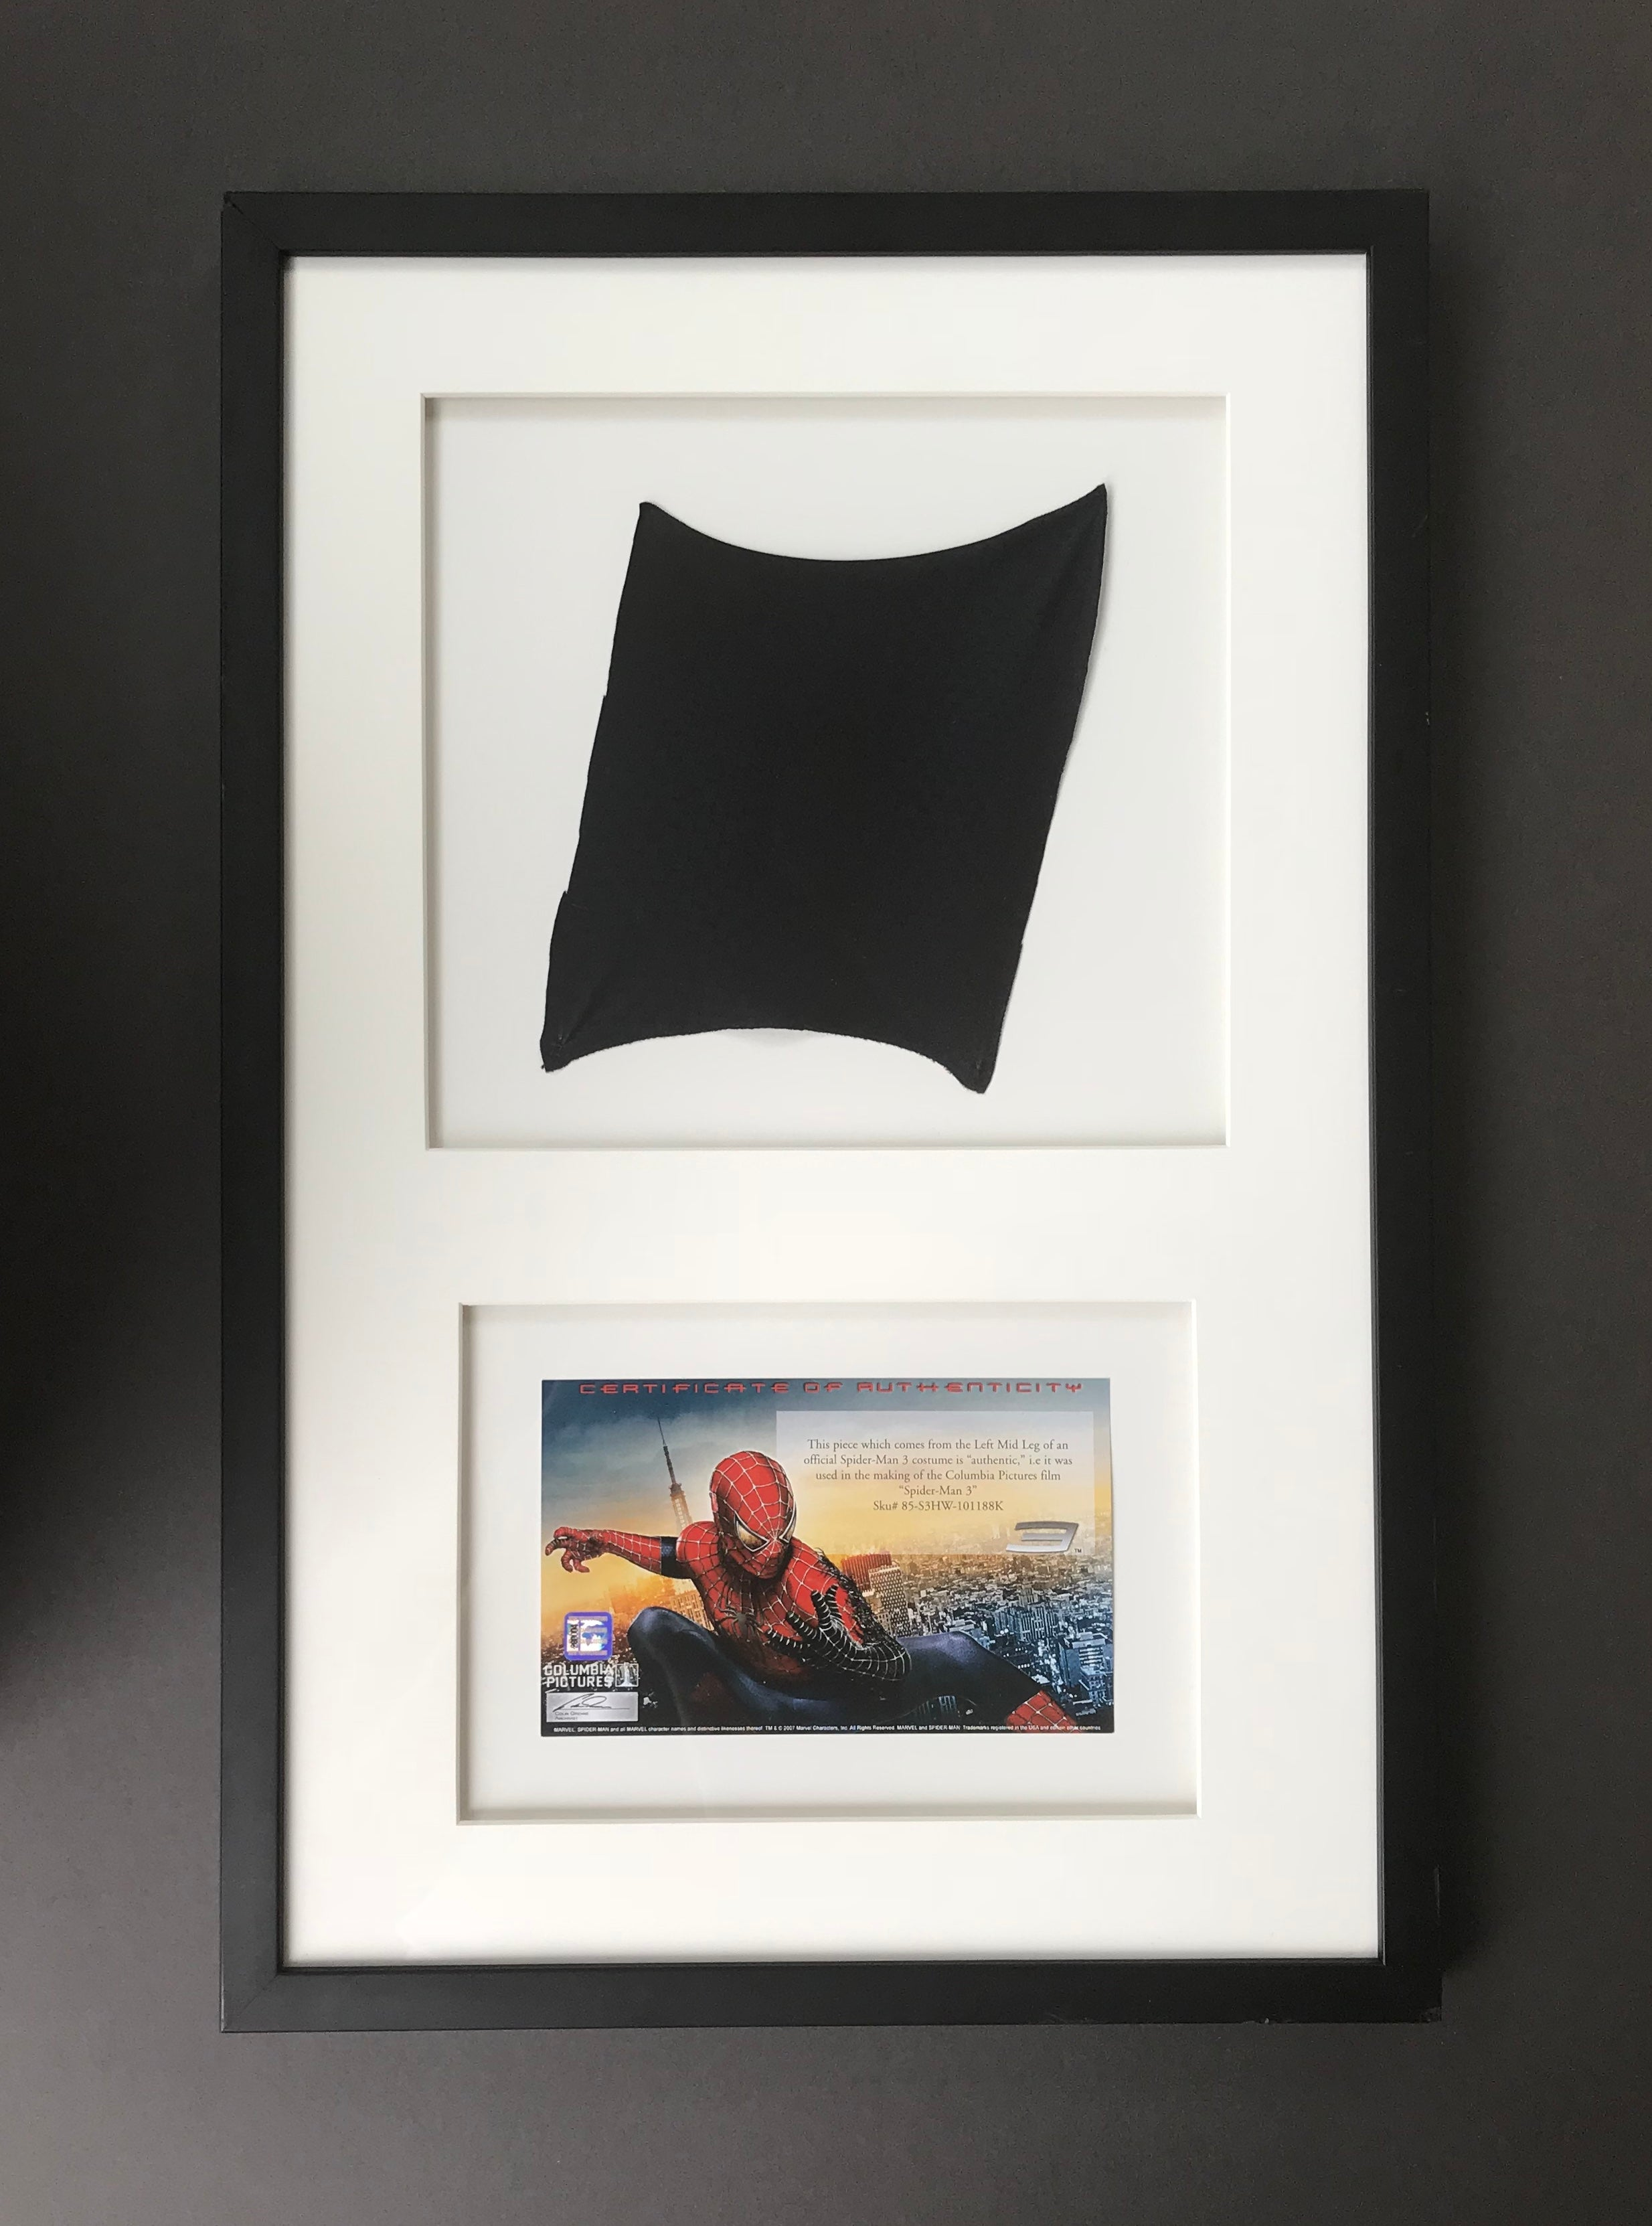 Spider-Man 3 (2007) - A Piece of the Original Spider-Man Costume (SOLD)